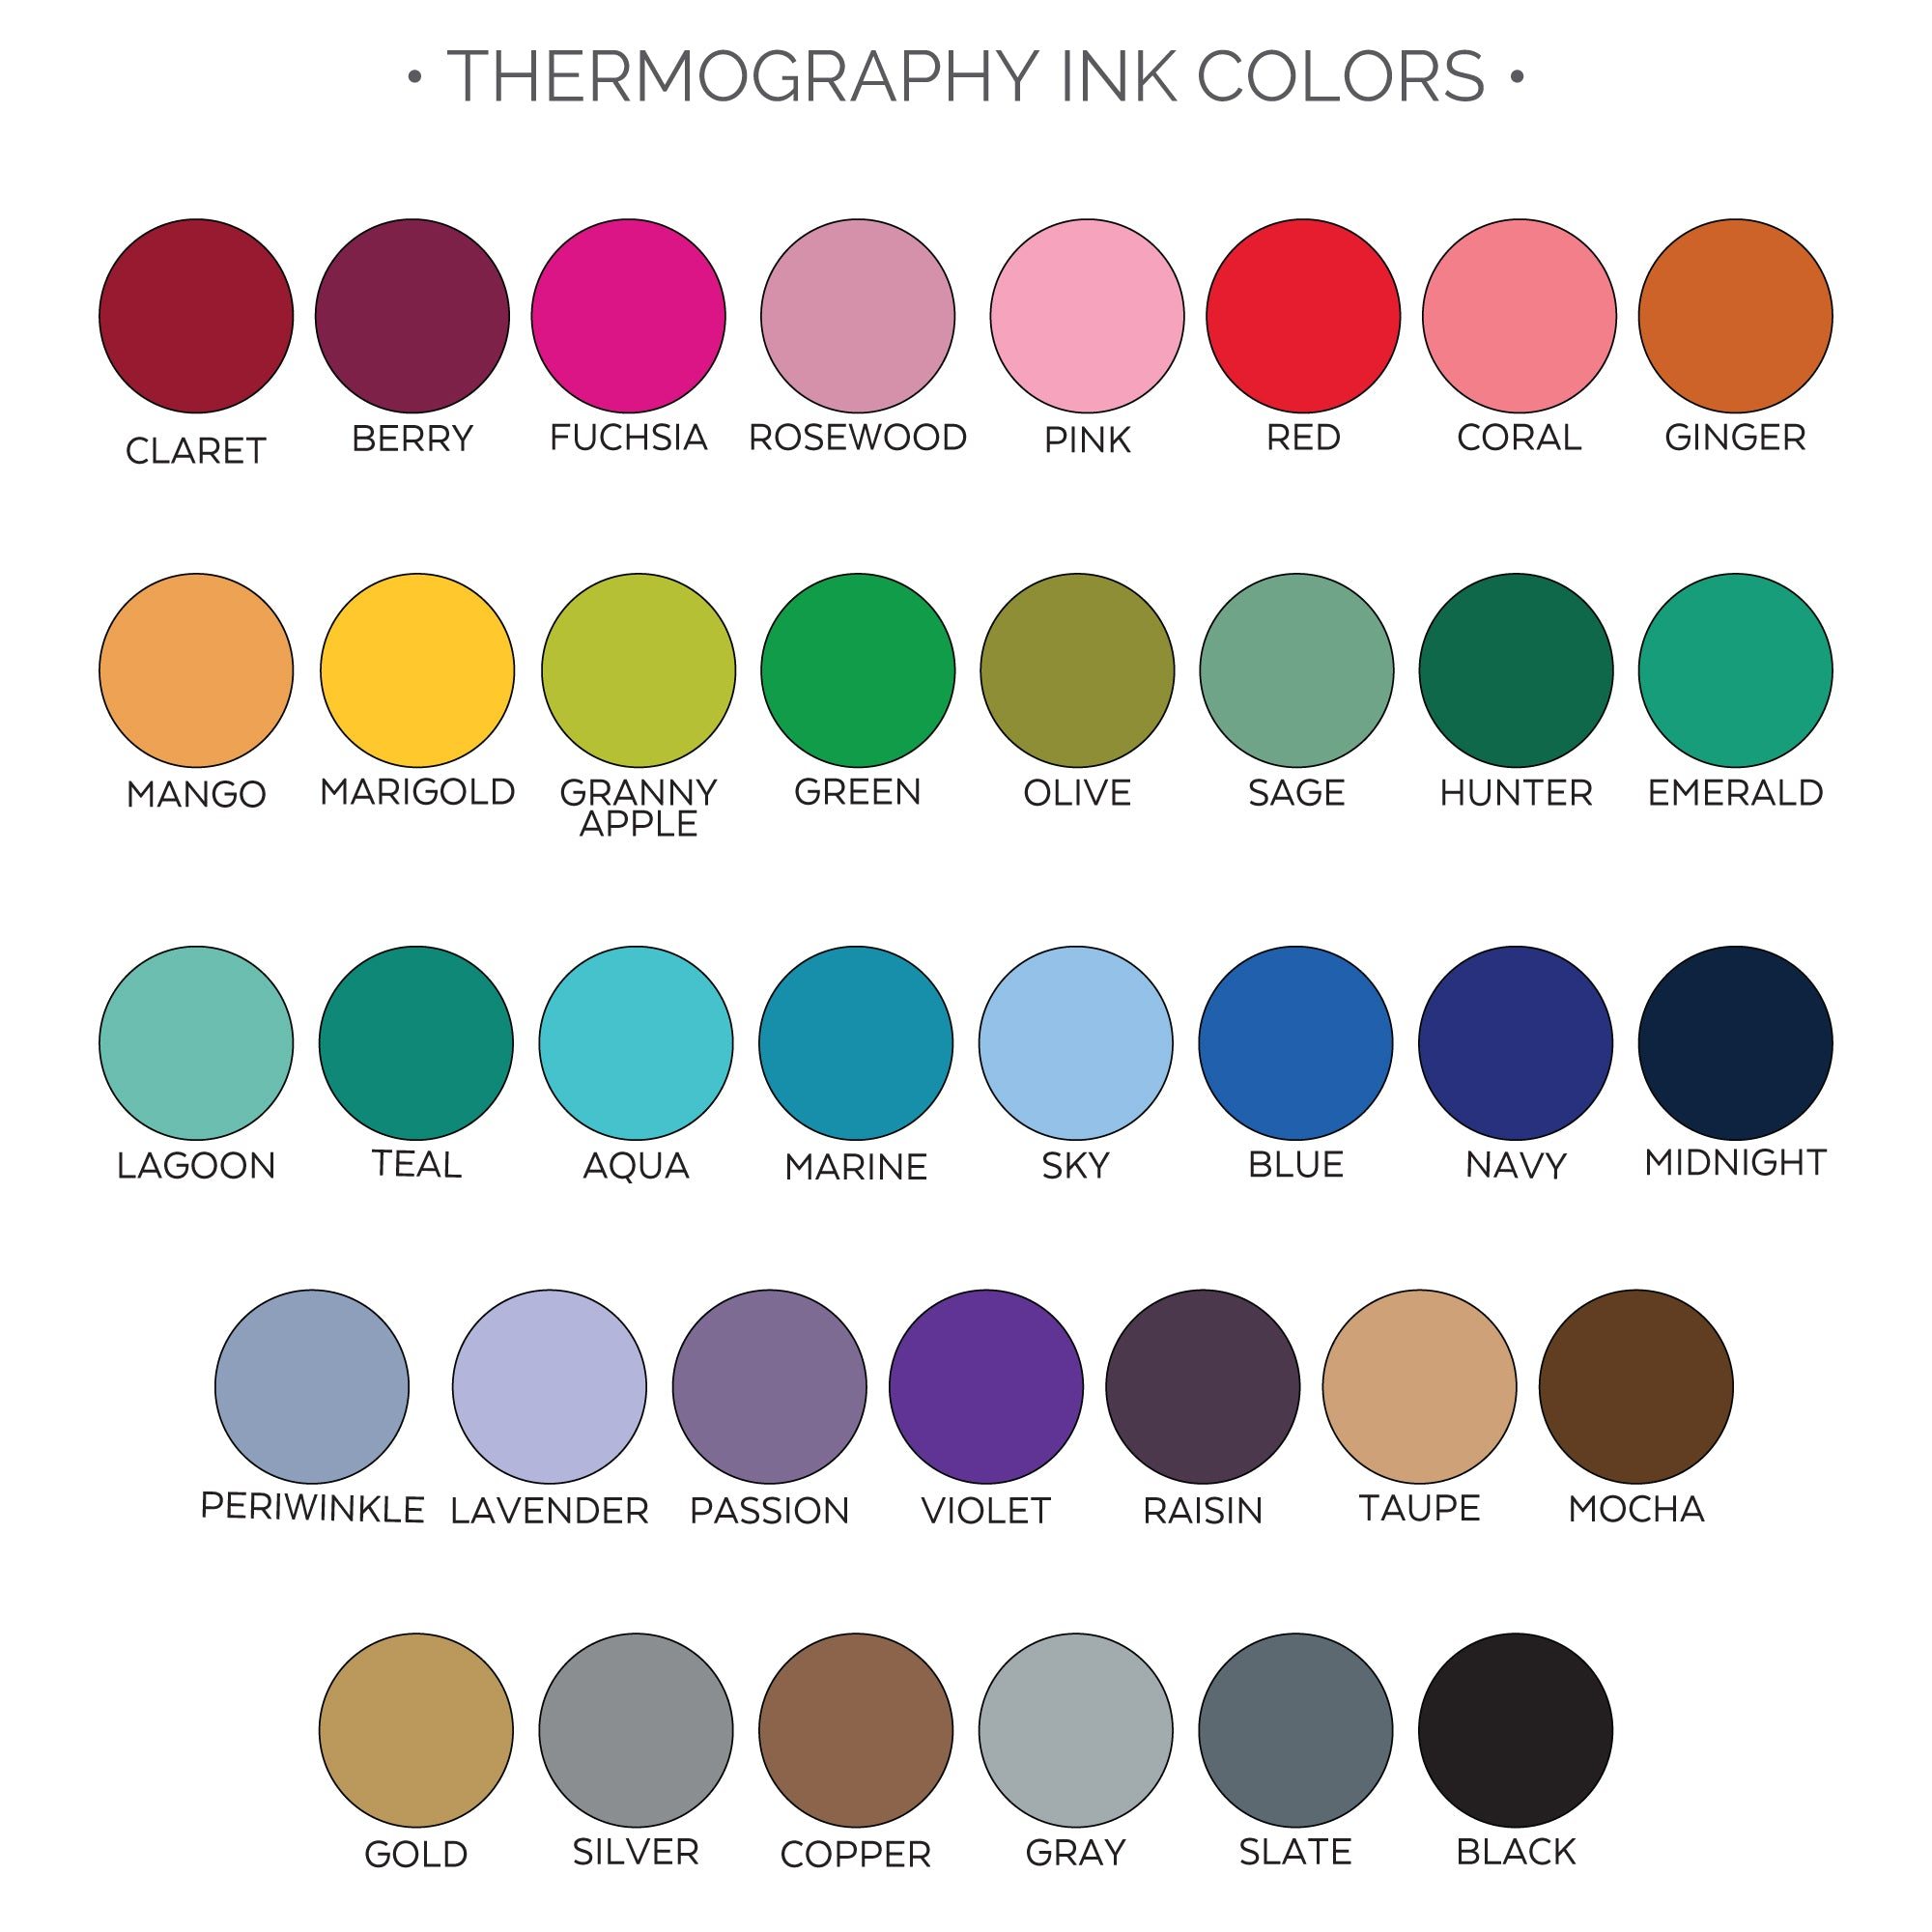 thermography ink colors